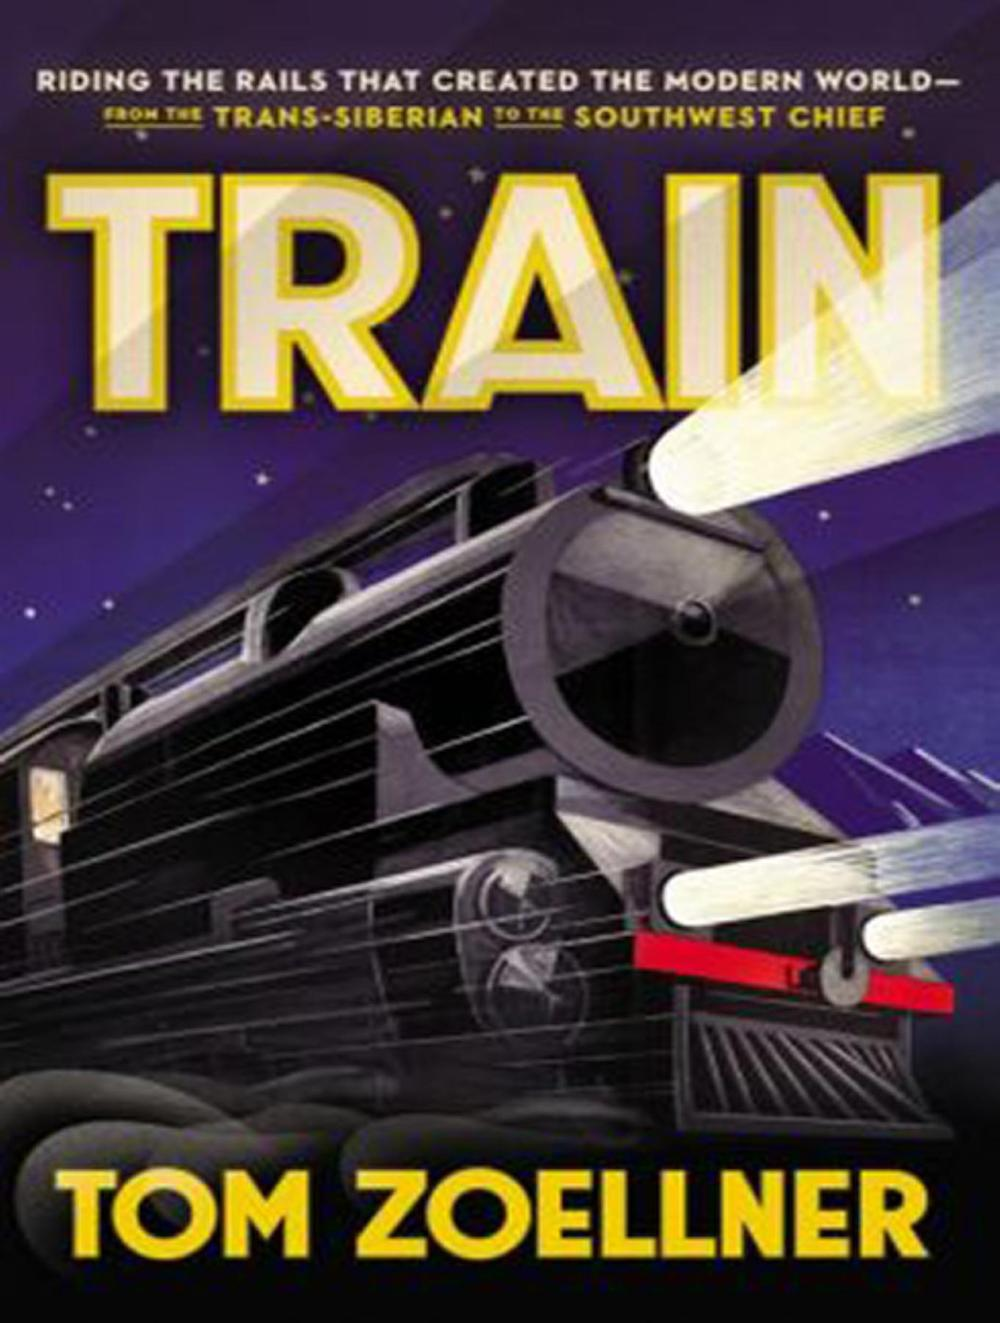 Train: Riding the Rails That Created the Modern World